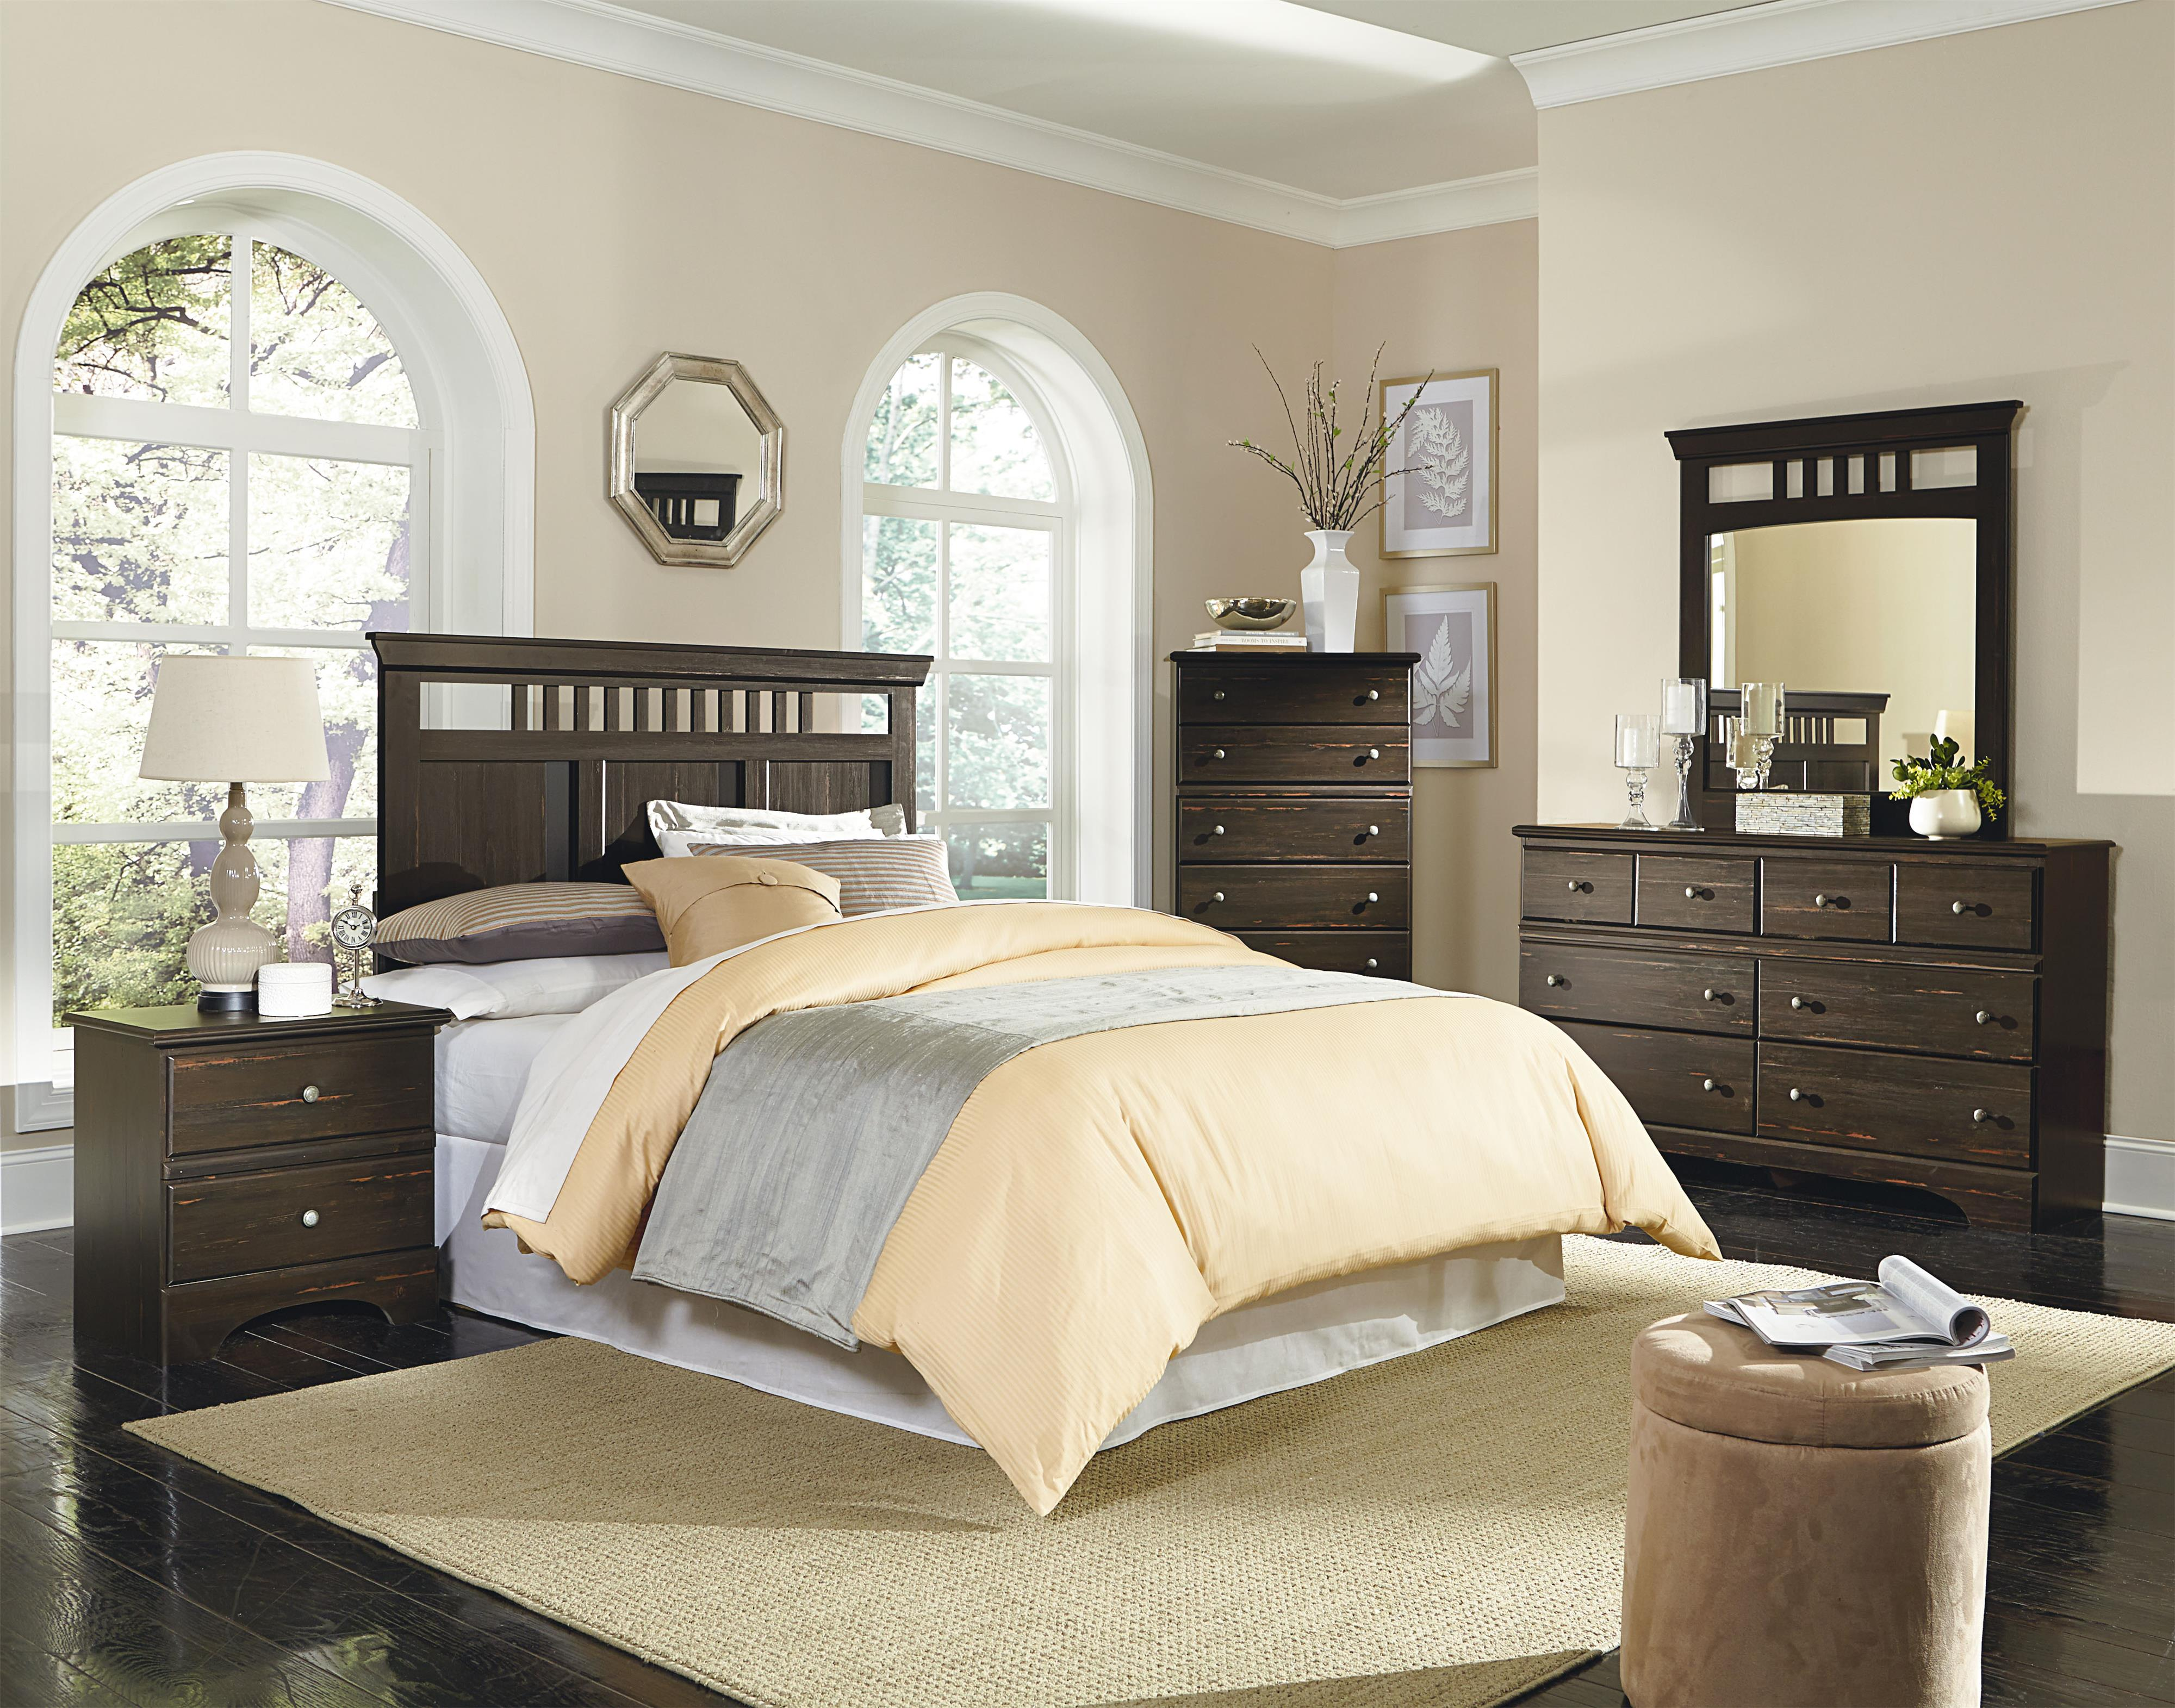 Standard Furniture Hampton King/California King Bedroom Group - Item Number: 52050 KCK Bedroom Group 1